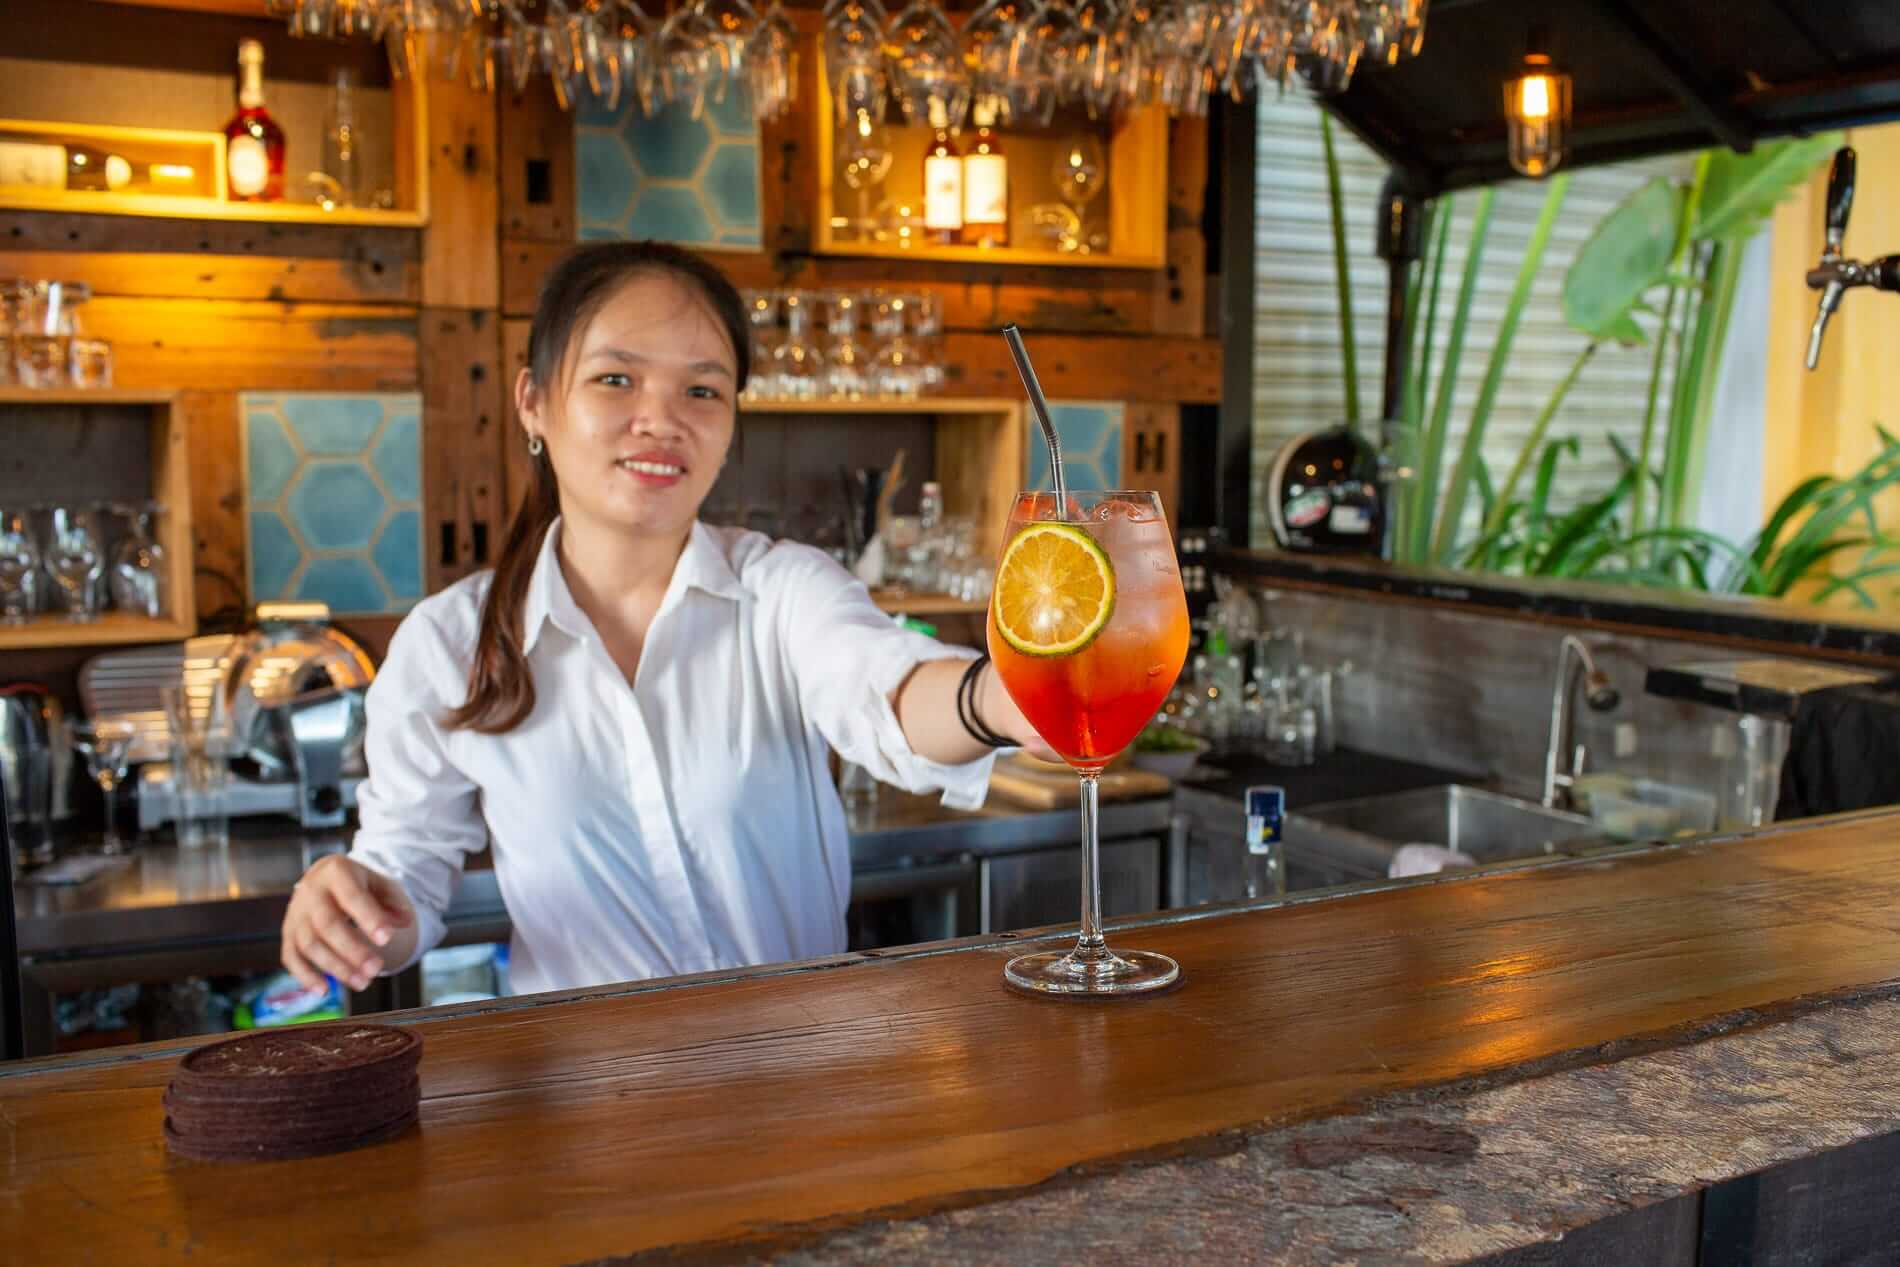 Find a peaceful oasis at Market Bar Hoi An